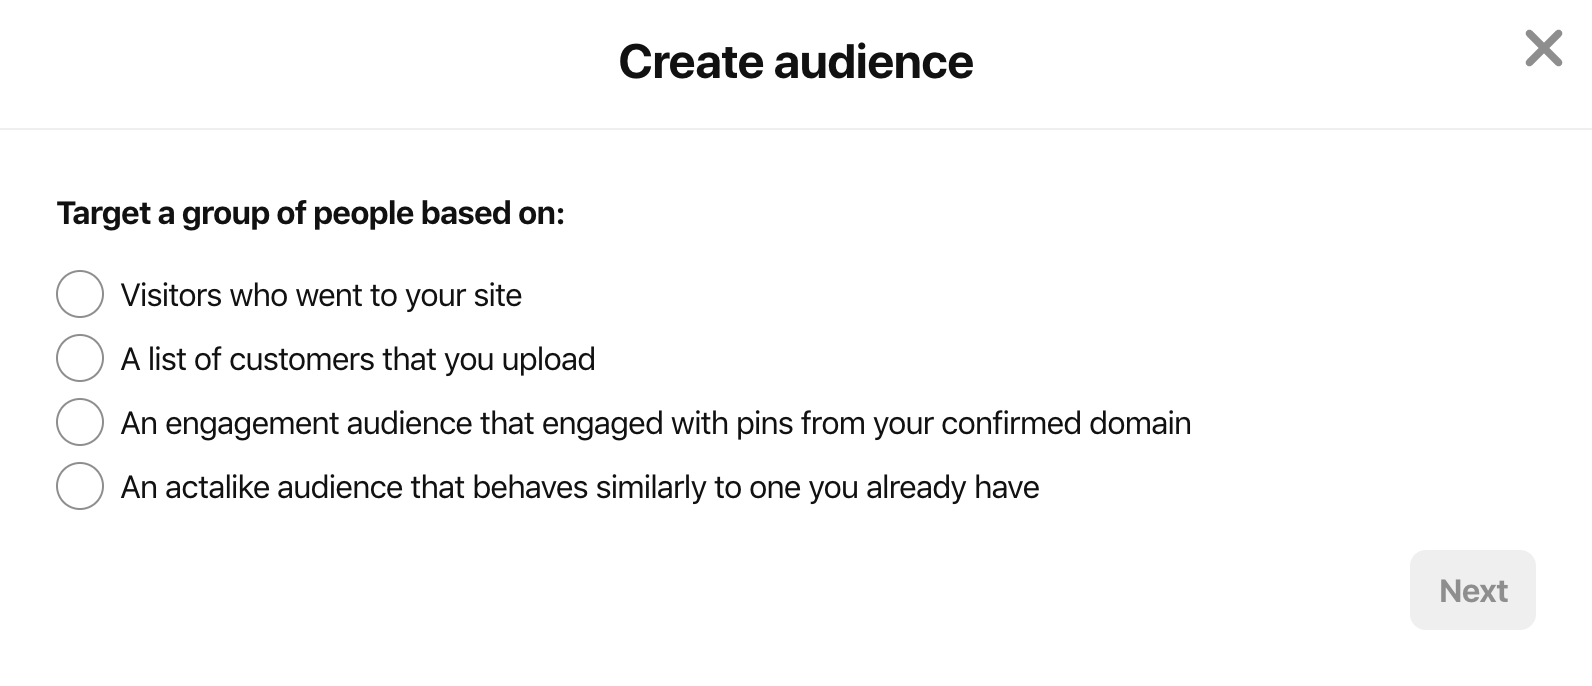 pinterest ad targeting - types of audiences to create